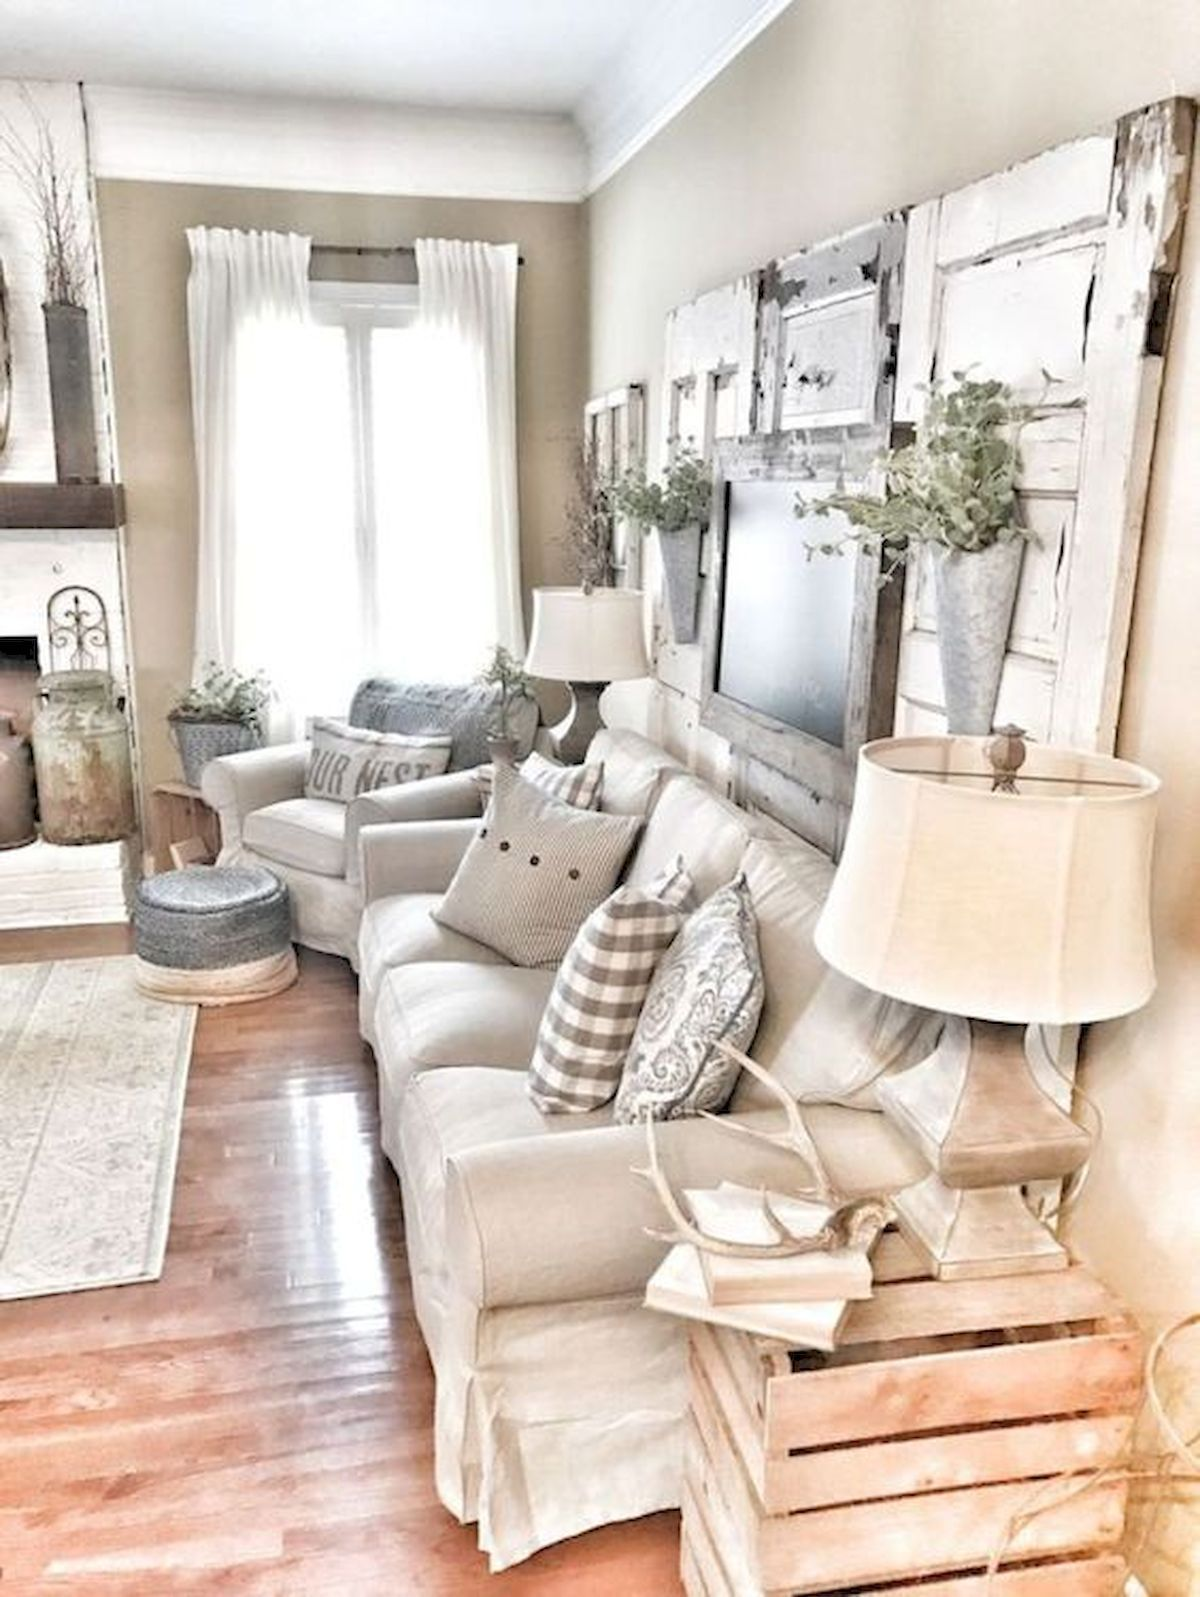 modern country living room on 53 cozy living room decor ideas to make anyone feels at home matchness com farmhouse decor living room farm house living room modern farmhouse living room decor 53 cozy living room decor ideas to make